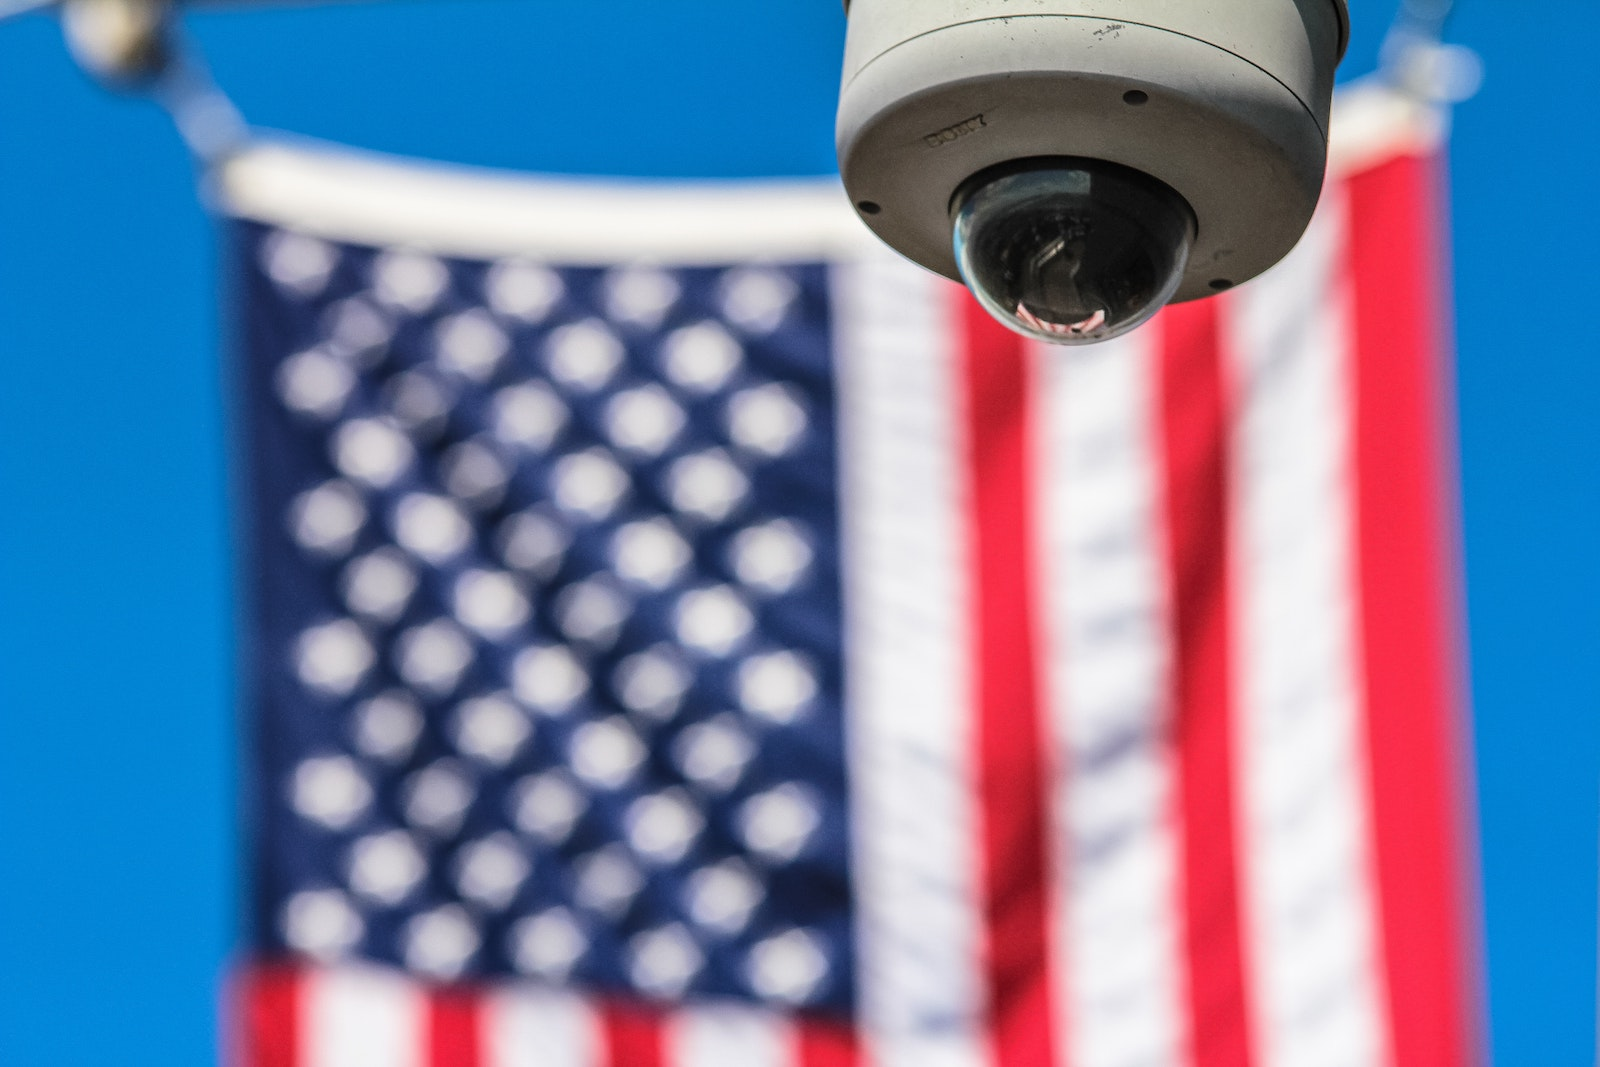 American Flag - Crimes on Camera - Under Arrest and Under Surveillance |The Law Offices of Bryan R. Kazarian - Los Angeles County Criminal Defense Attorneys - property, juvenile, petty theft, DUI, misdemeanor, and felony Criminal Law